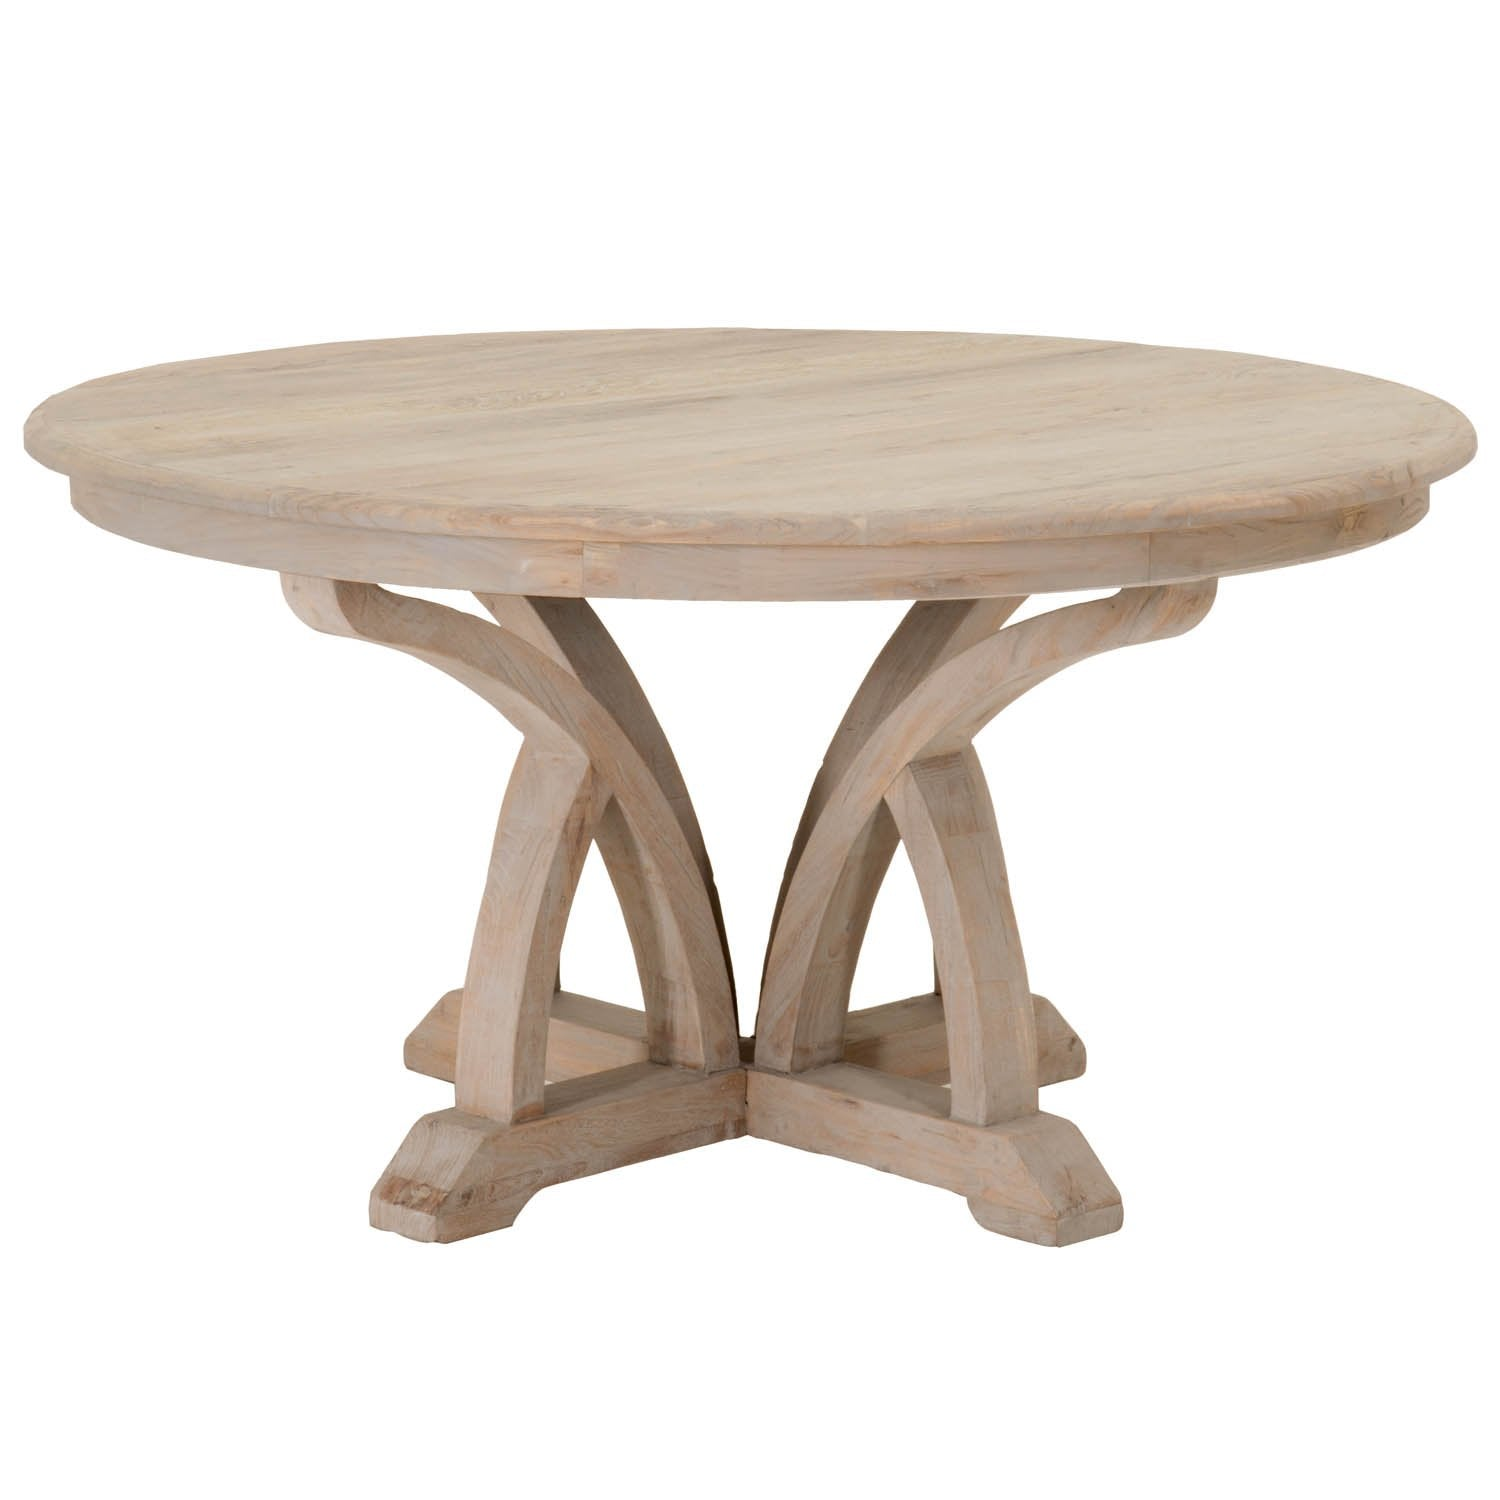 "Carnegie 60"" Round Dining Table in Smoke Gray Elm"